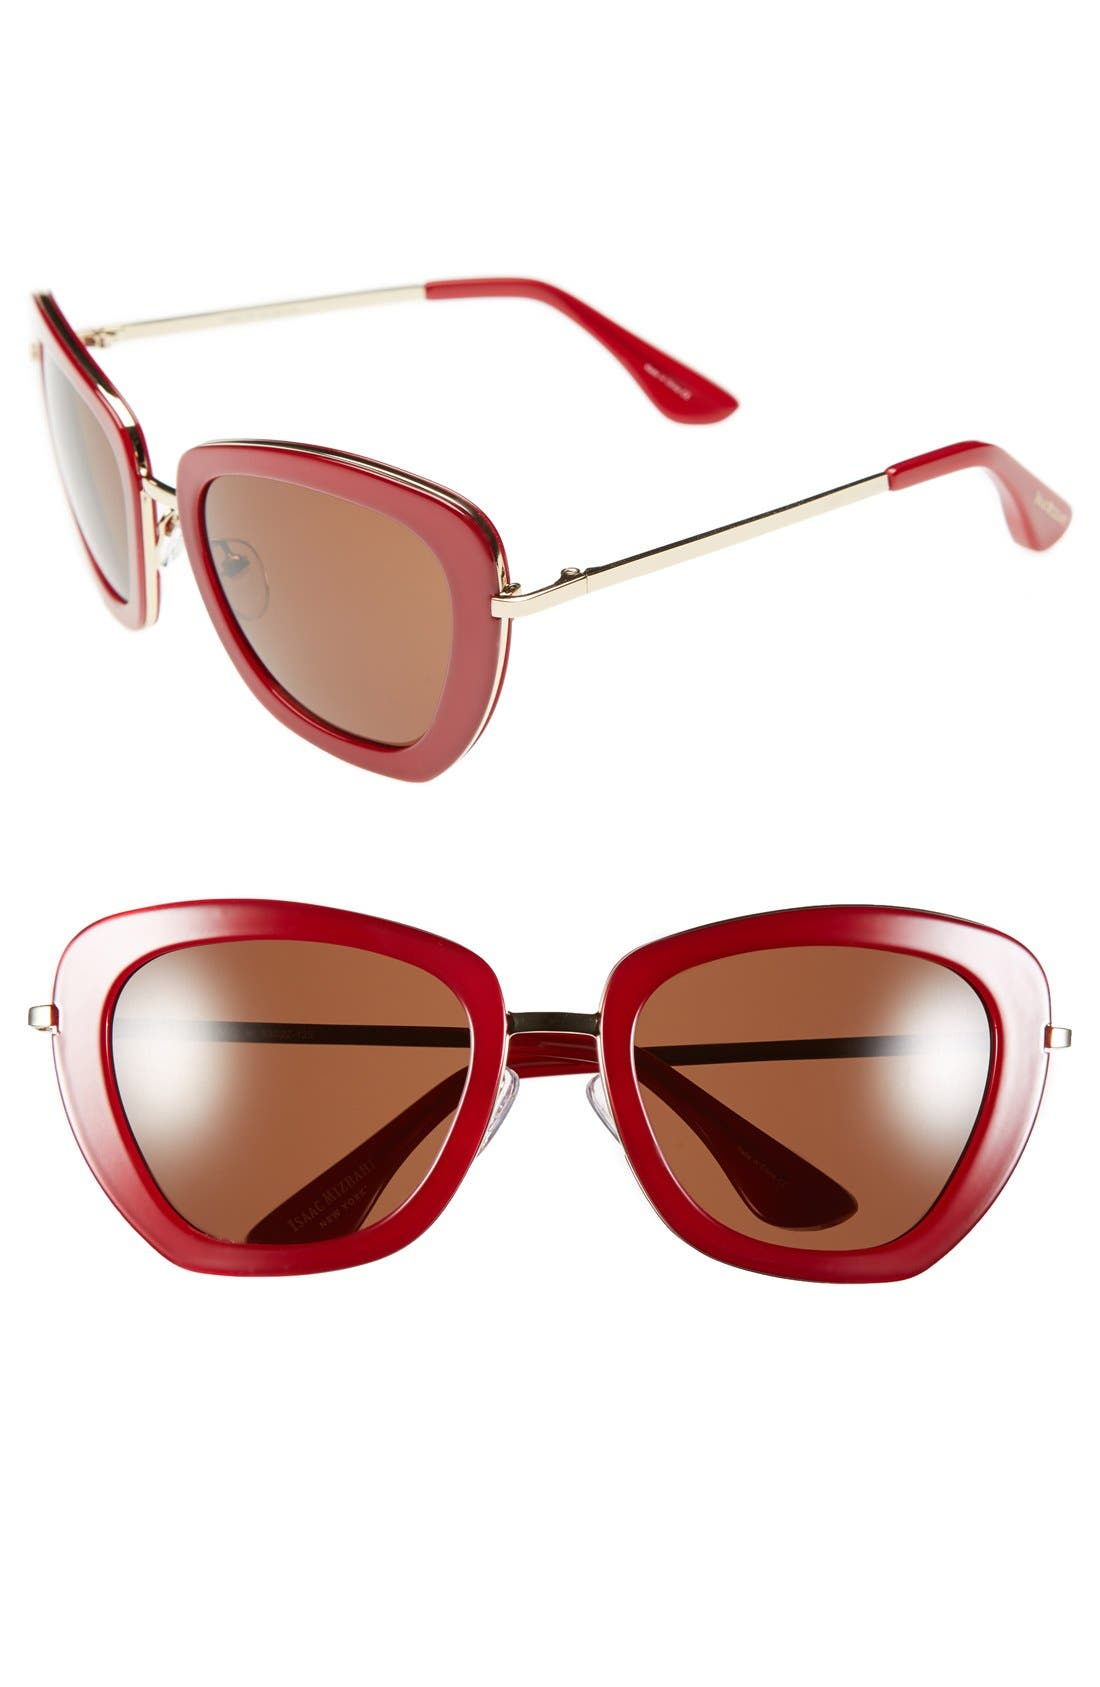 Main Image - Isaac Mizrahi New York 53mm Retro Sunglasses